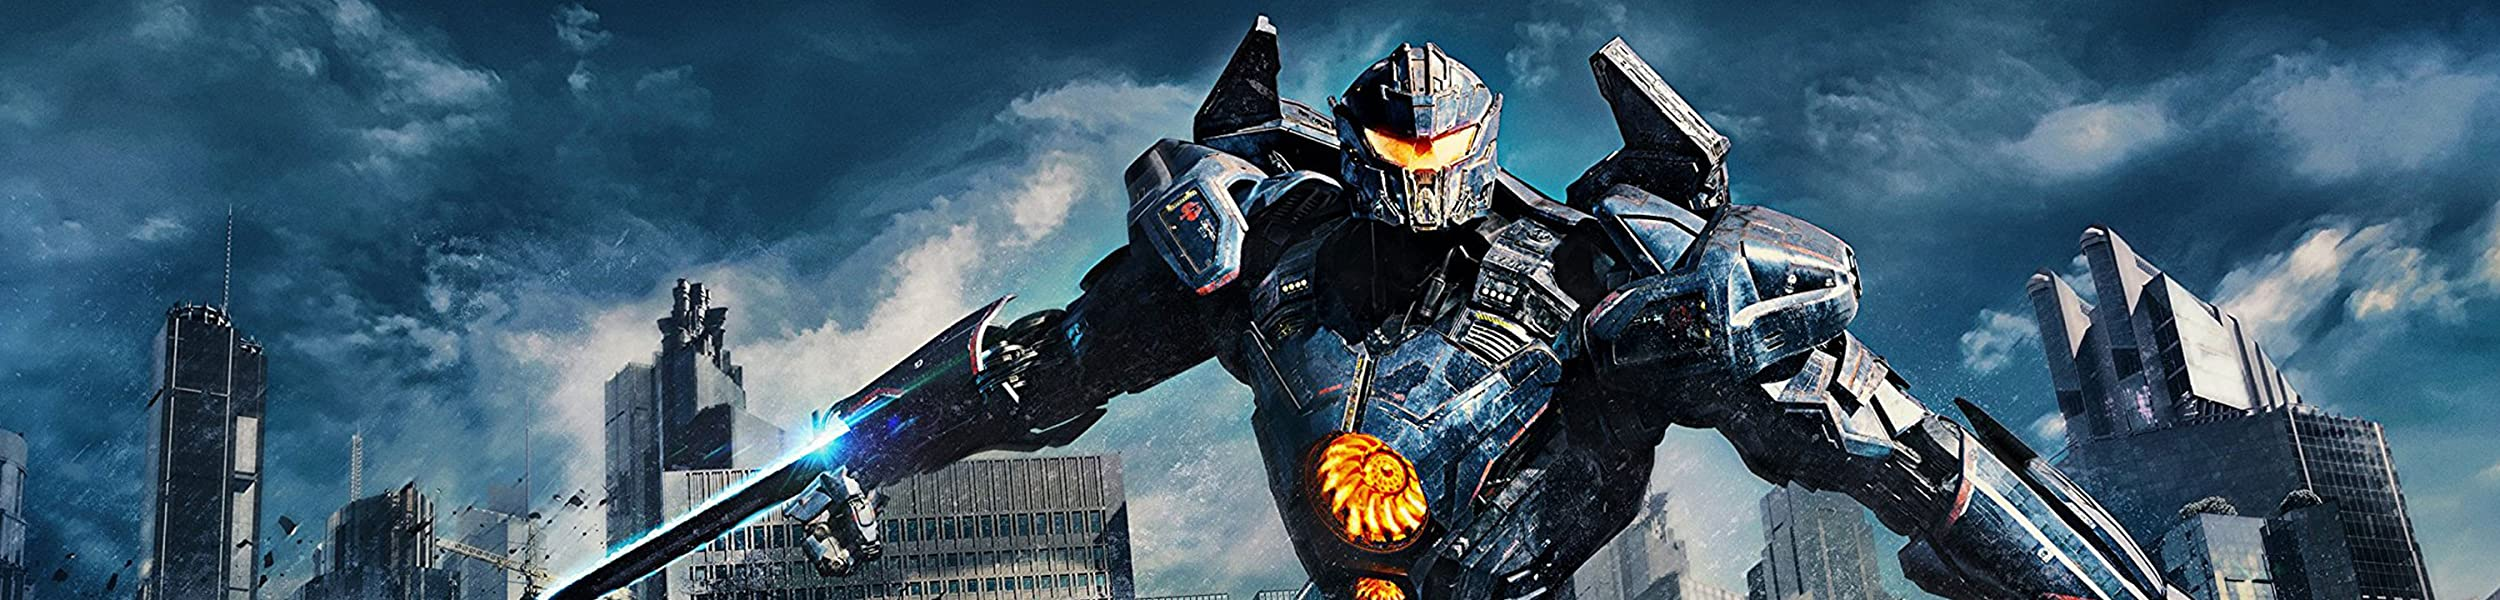 Pacific Rim Uprising - Available now